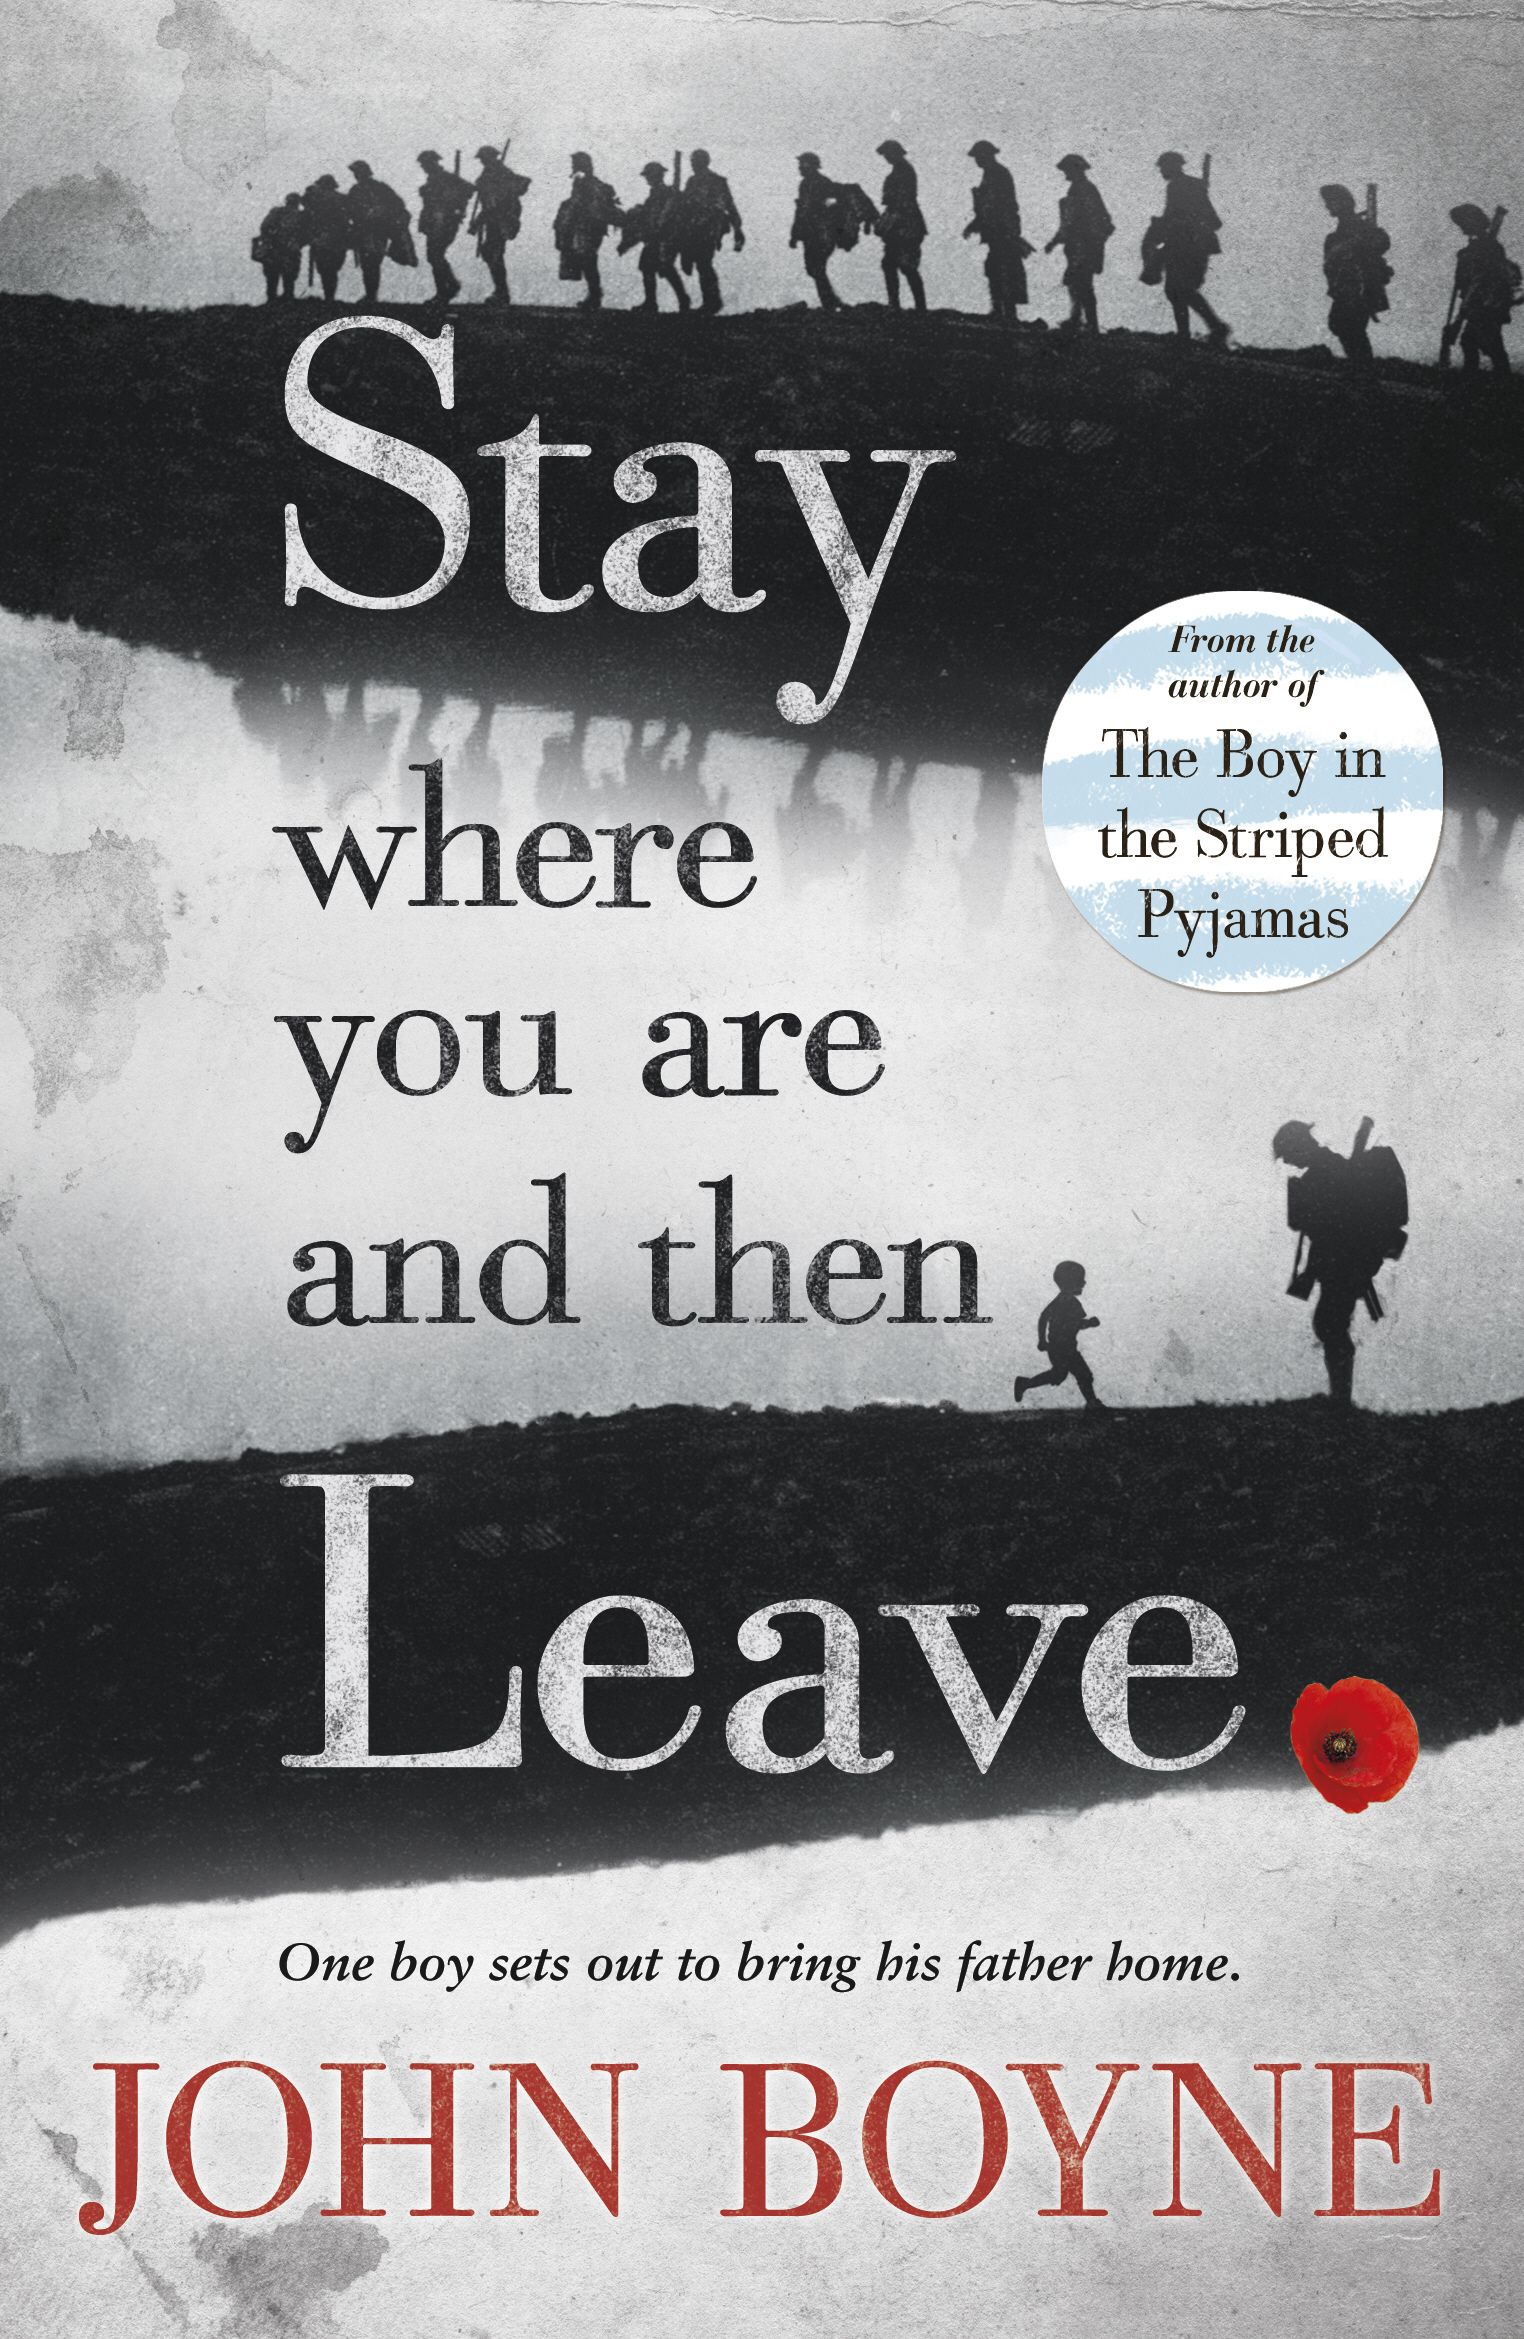 biography john boyne stay where you are and then leave